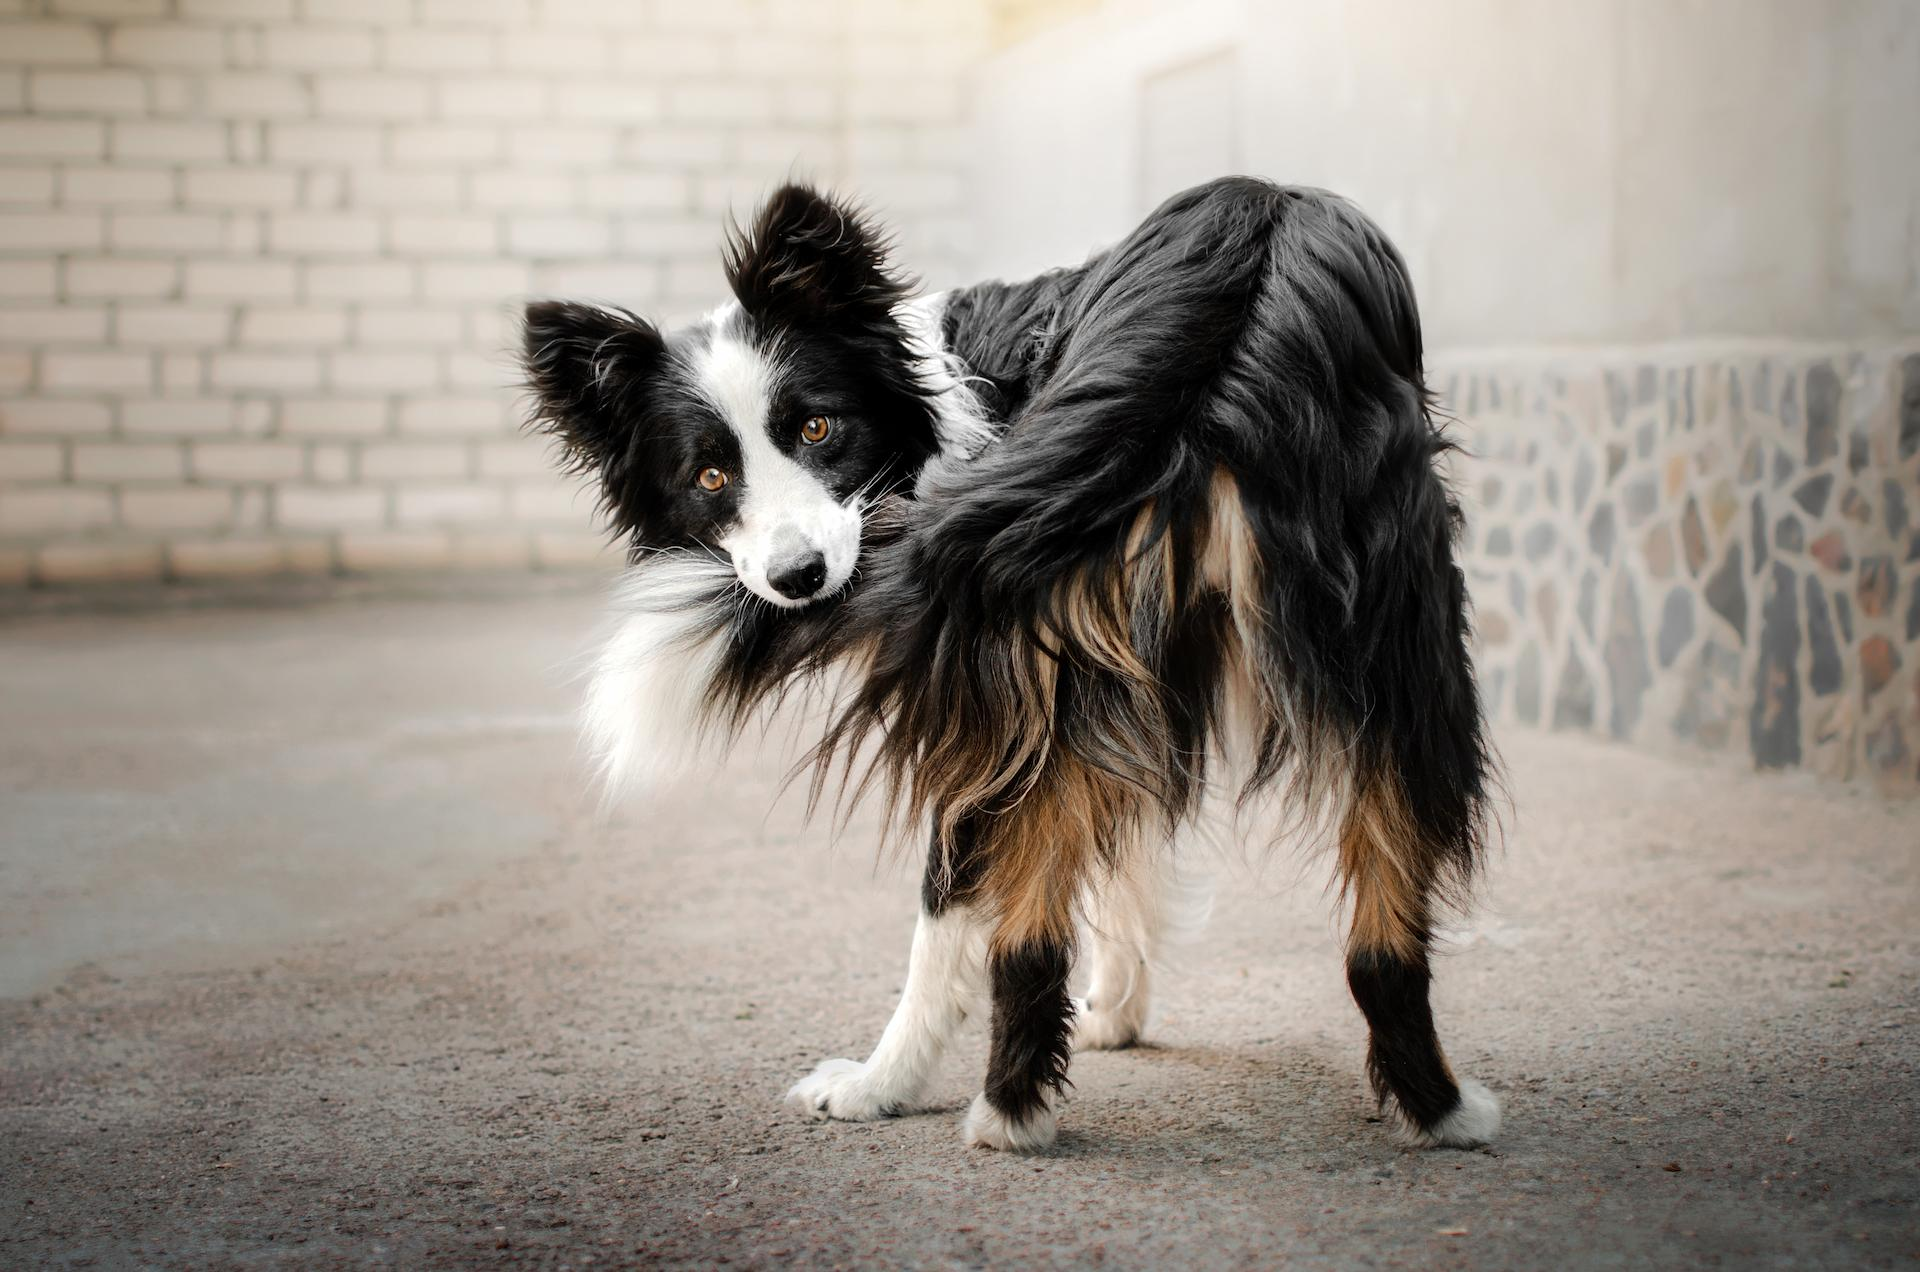 Dogs wag their tails to provide social cues and to express their feelings. If a dog is wagging its tail in an upright fashion...